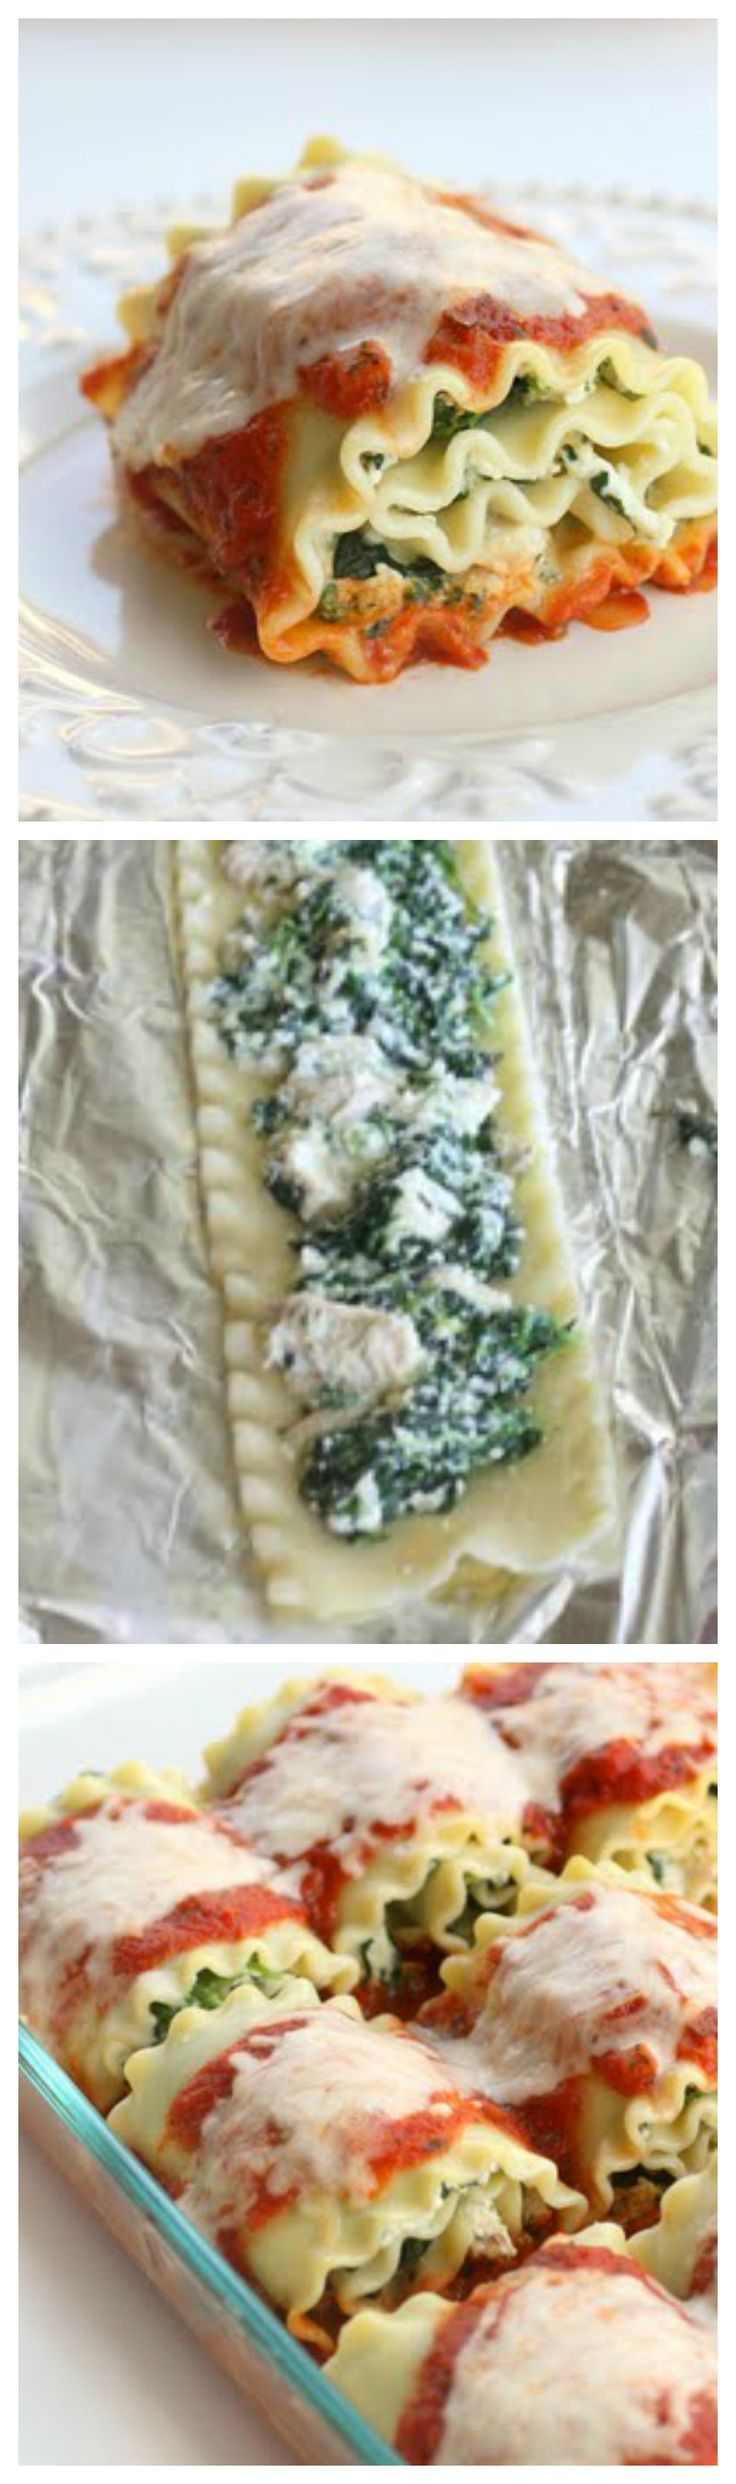 Healthy Spinach Lasagna Rolls by thegirlwhoateevaerything #Lasagna #Spinach #Healthy